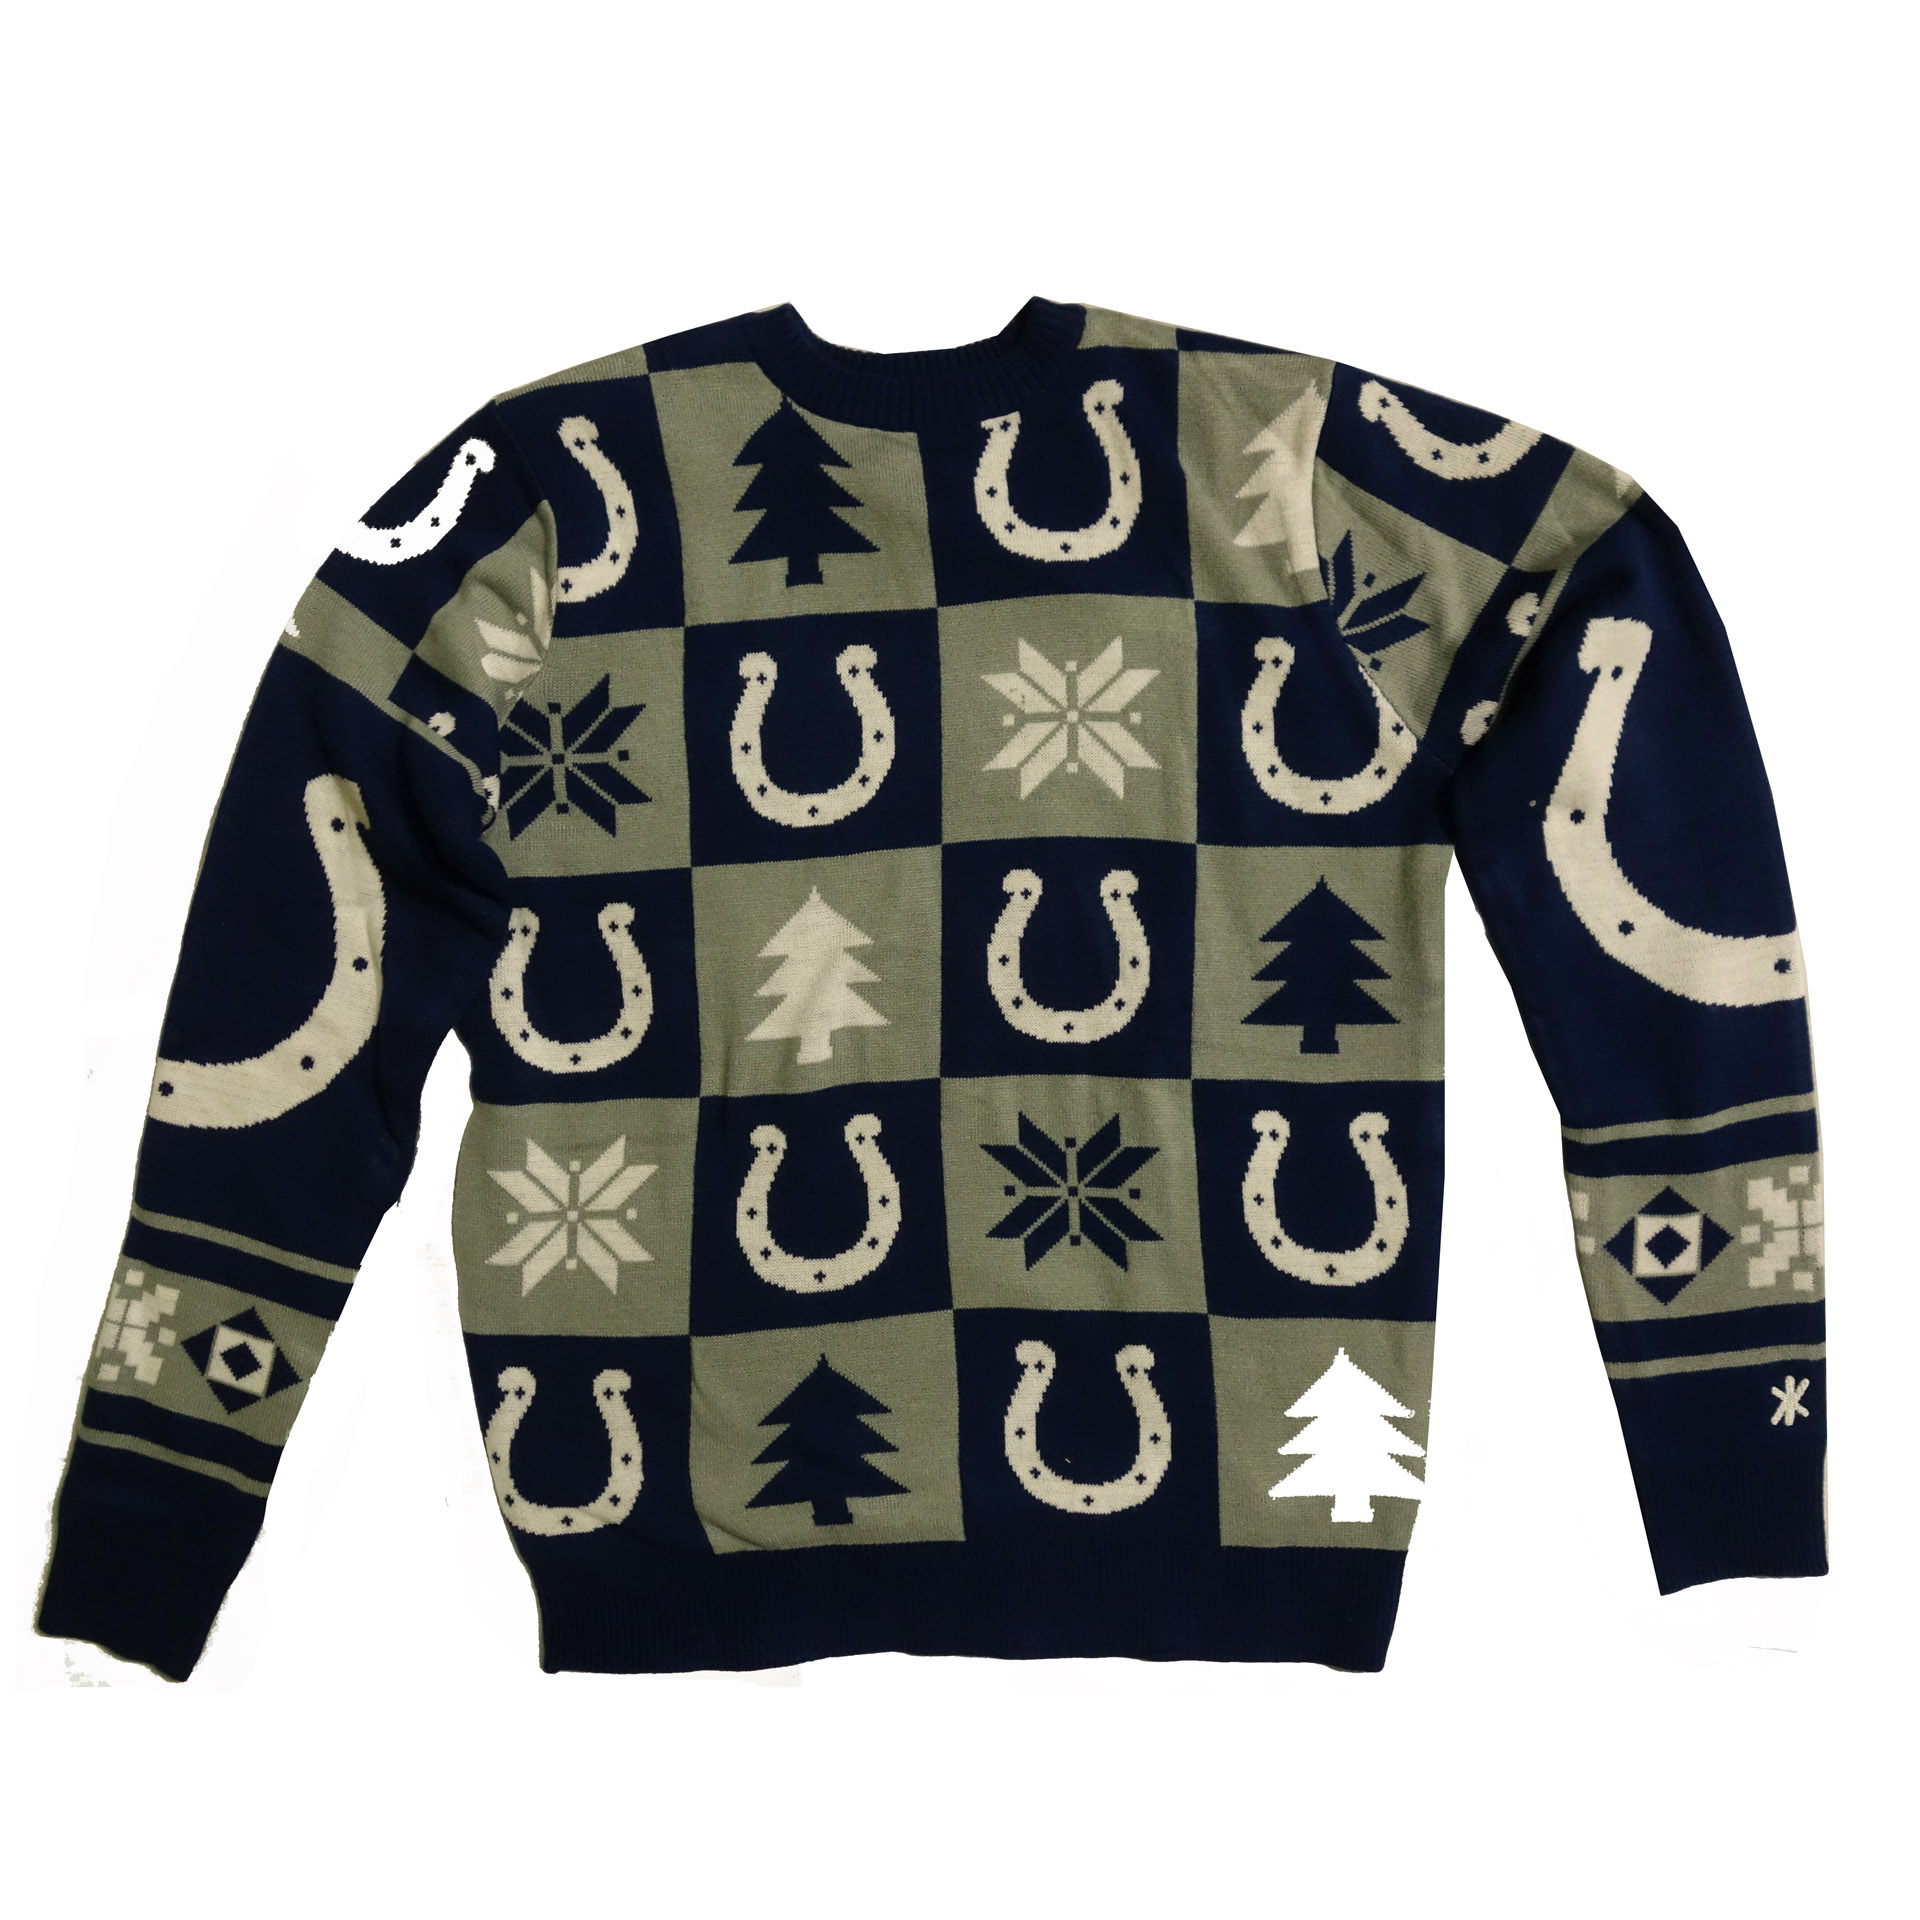 NFL Ugly Sweater Indianapolis Colts Schachbrettmuster Weihnachtspullover